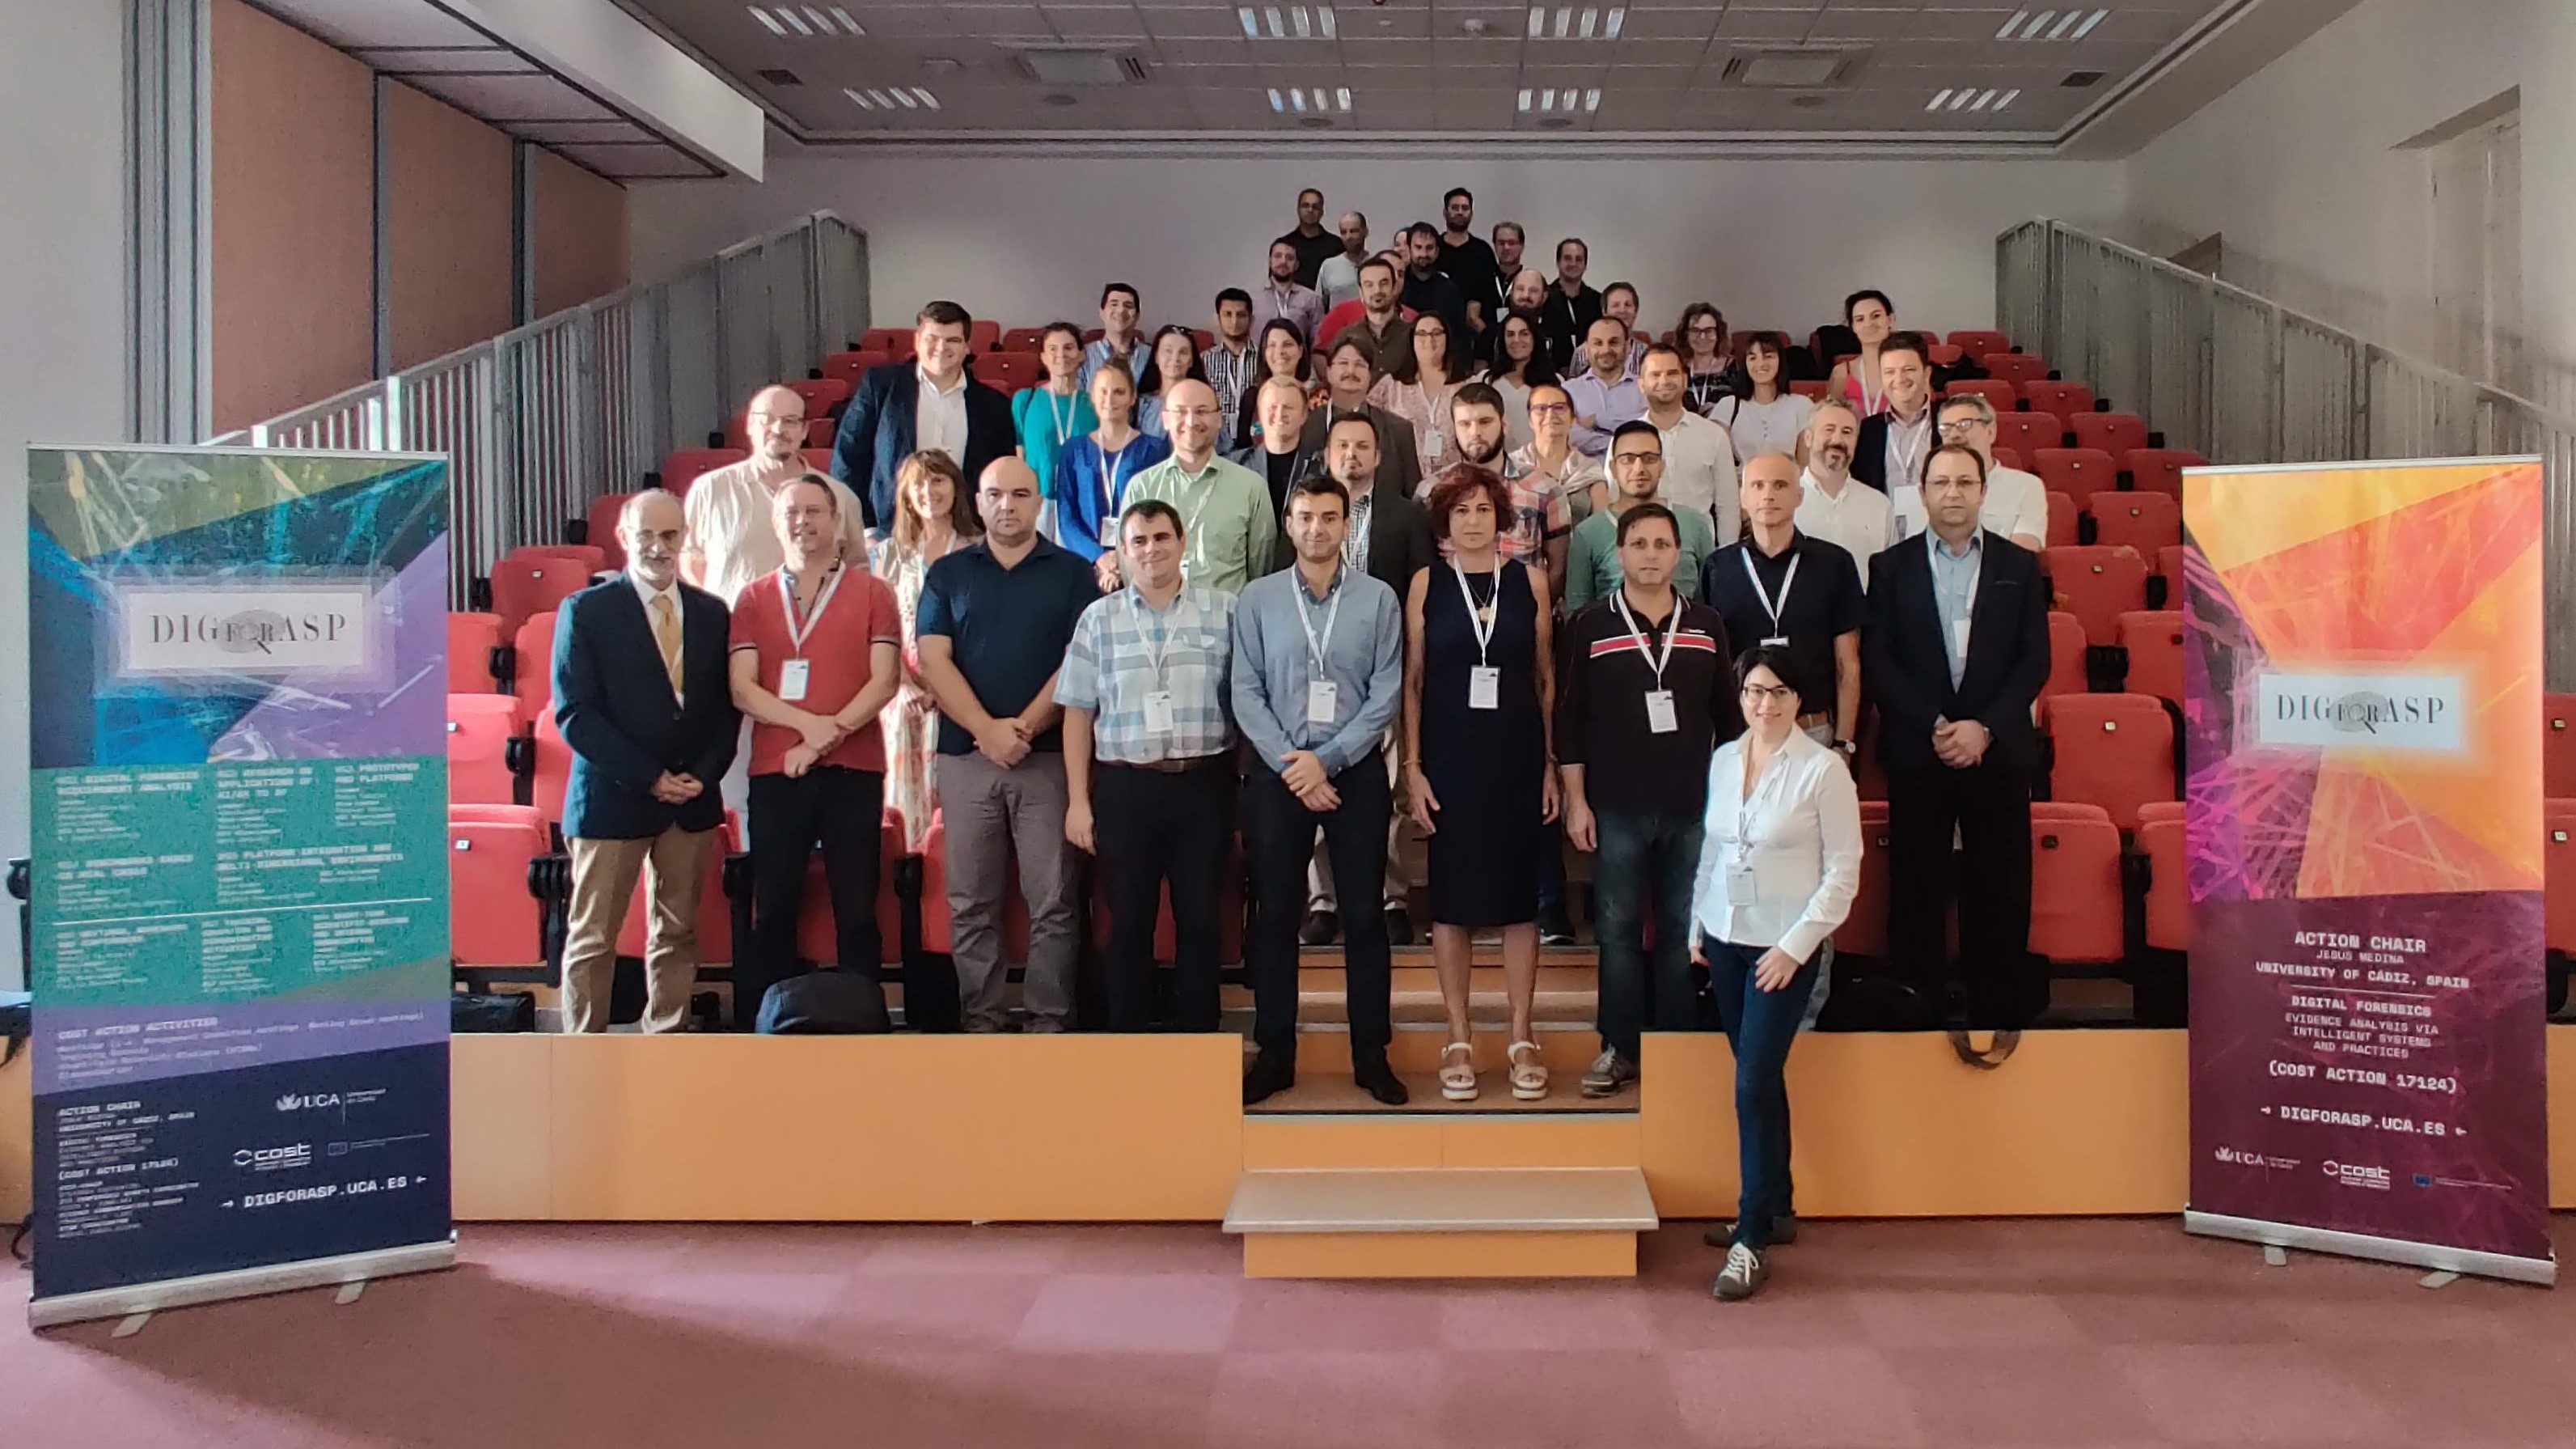 Digital Forensics European network 'DIGforASP' holds third Working Group Meeting in Malta